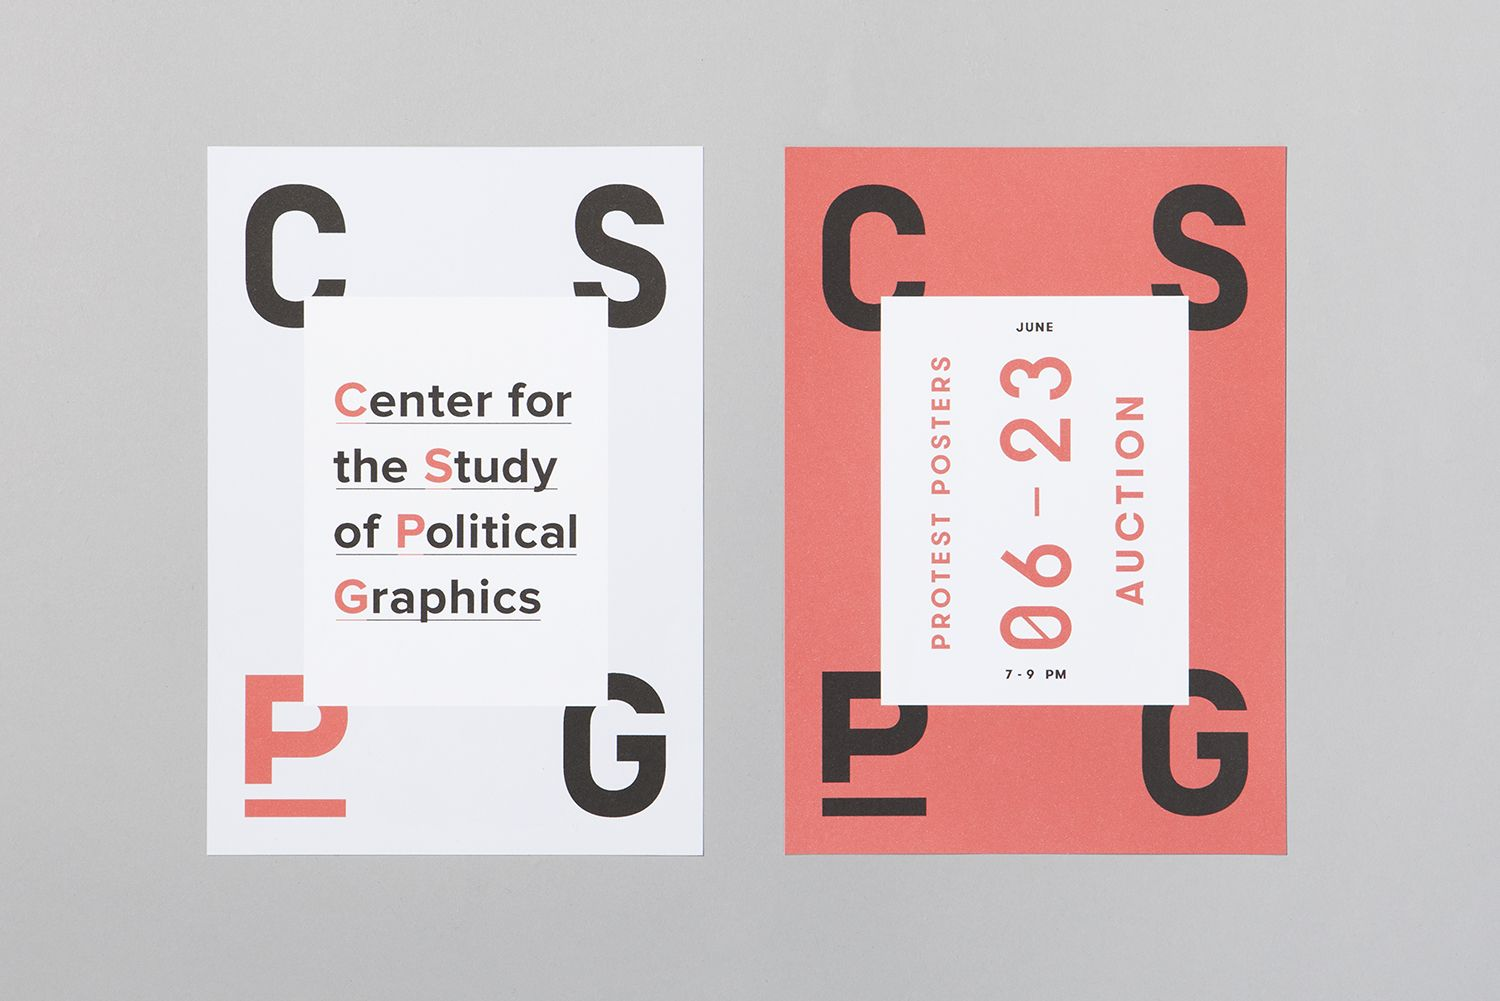 Visual identity and posters by Canadian studio Blok for The Centre for the Study of Political Graphics